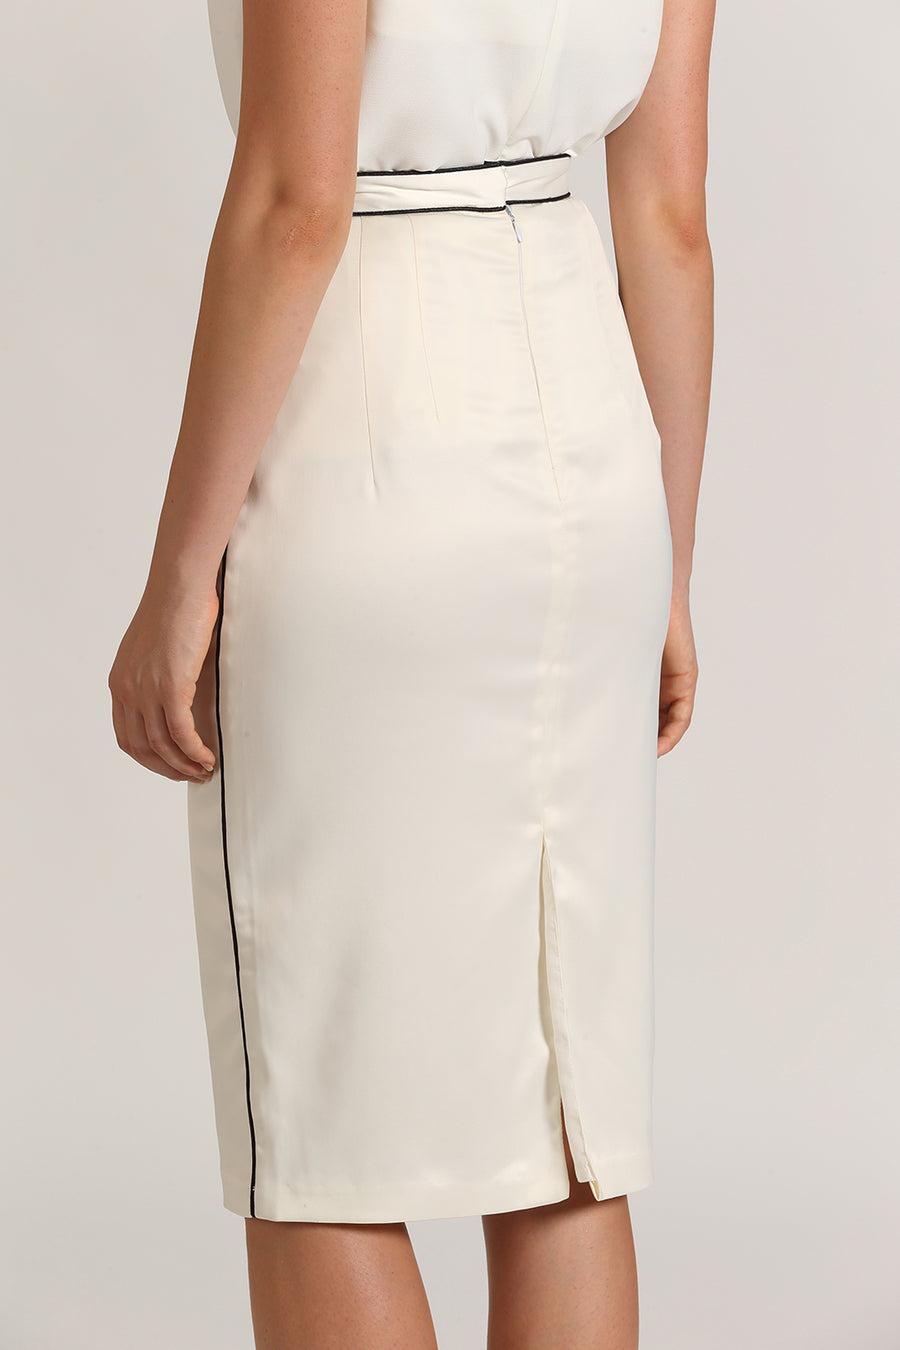 Contrast Binded Pencil Skirt | White